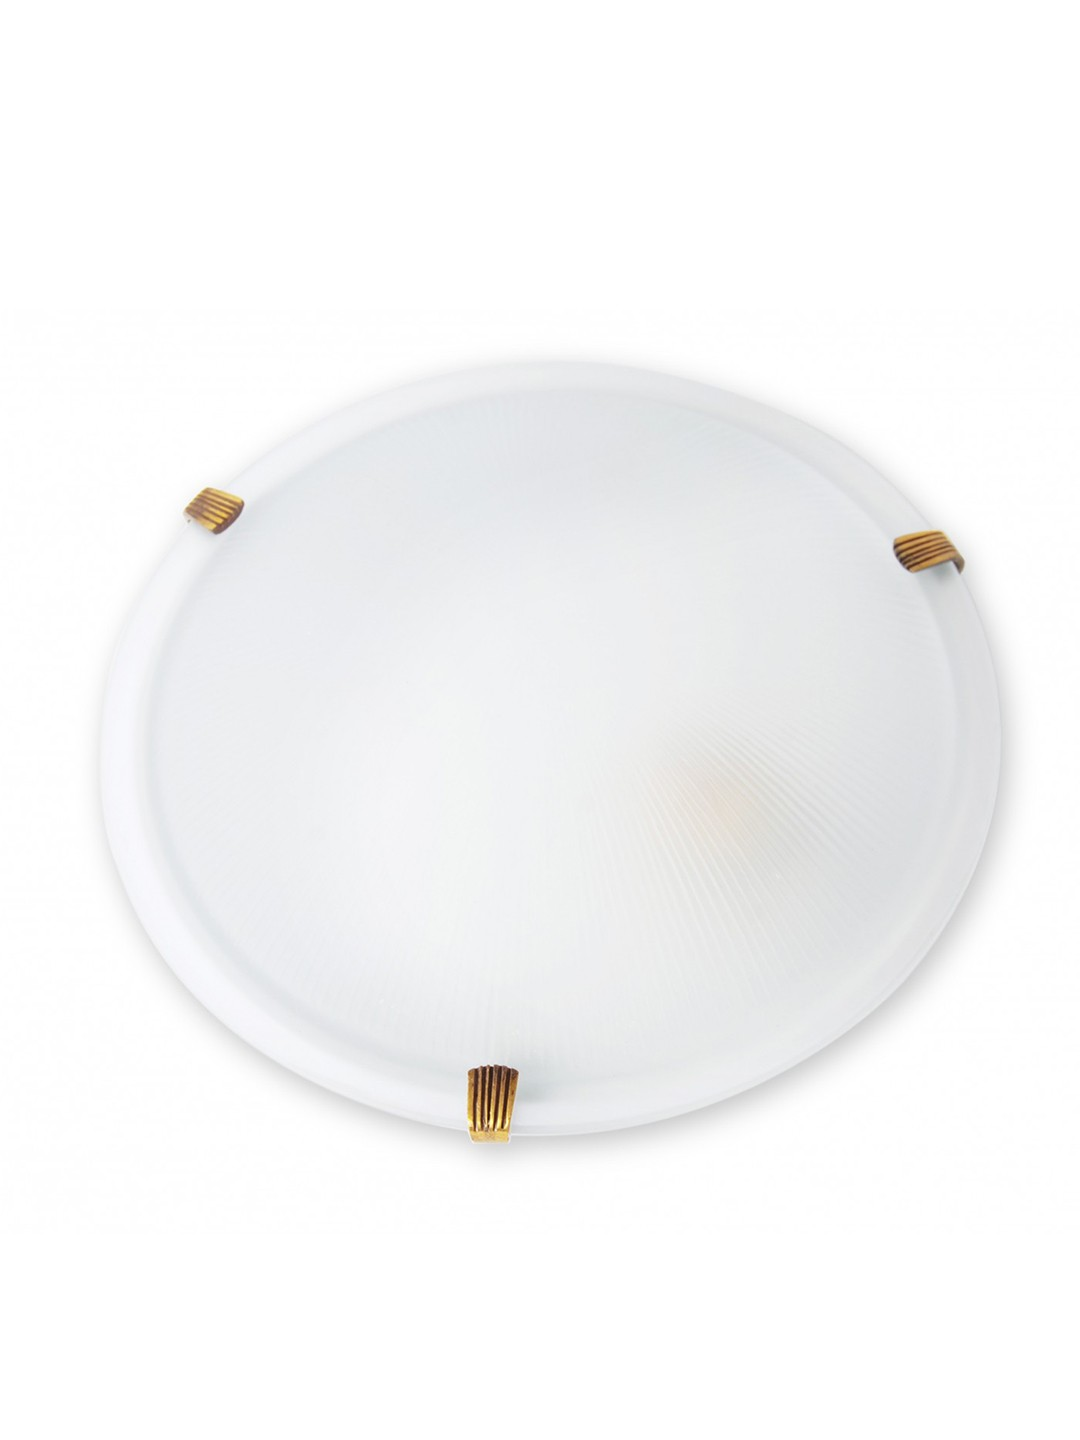 Sun Brass Clamps Ceiling Light - Small